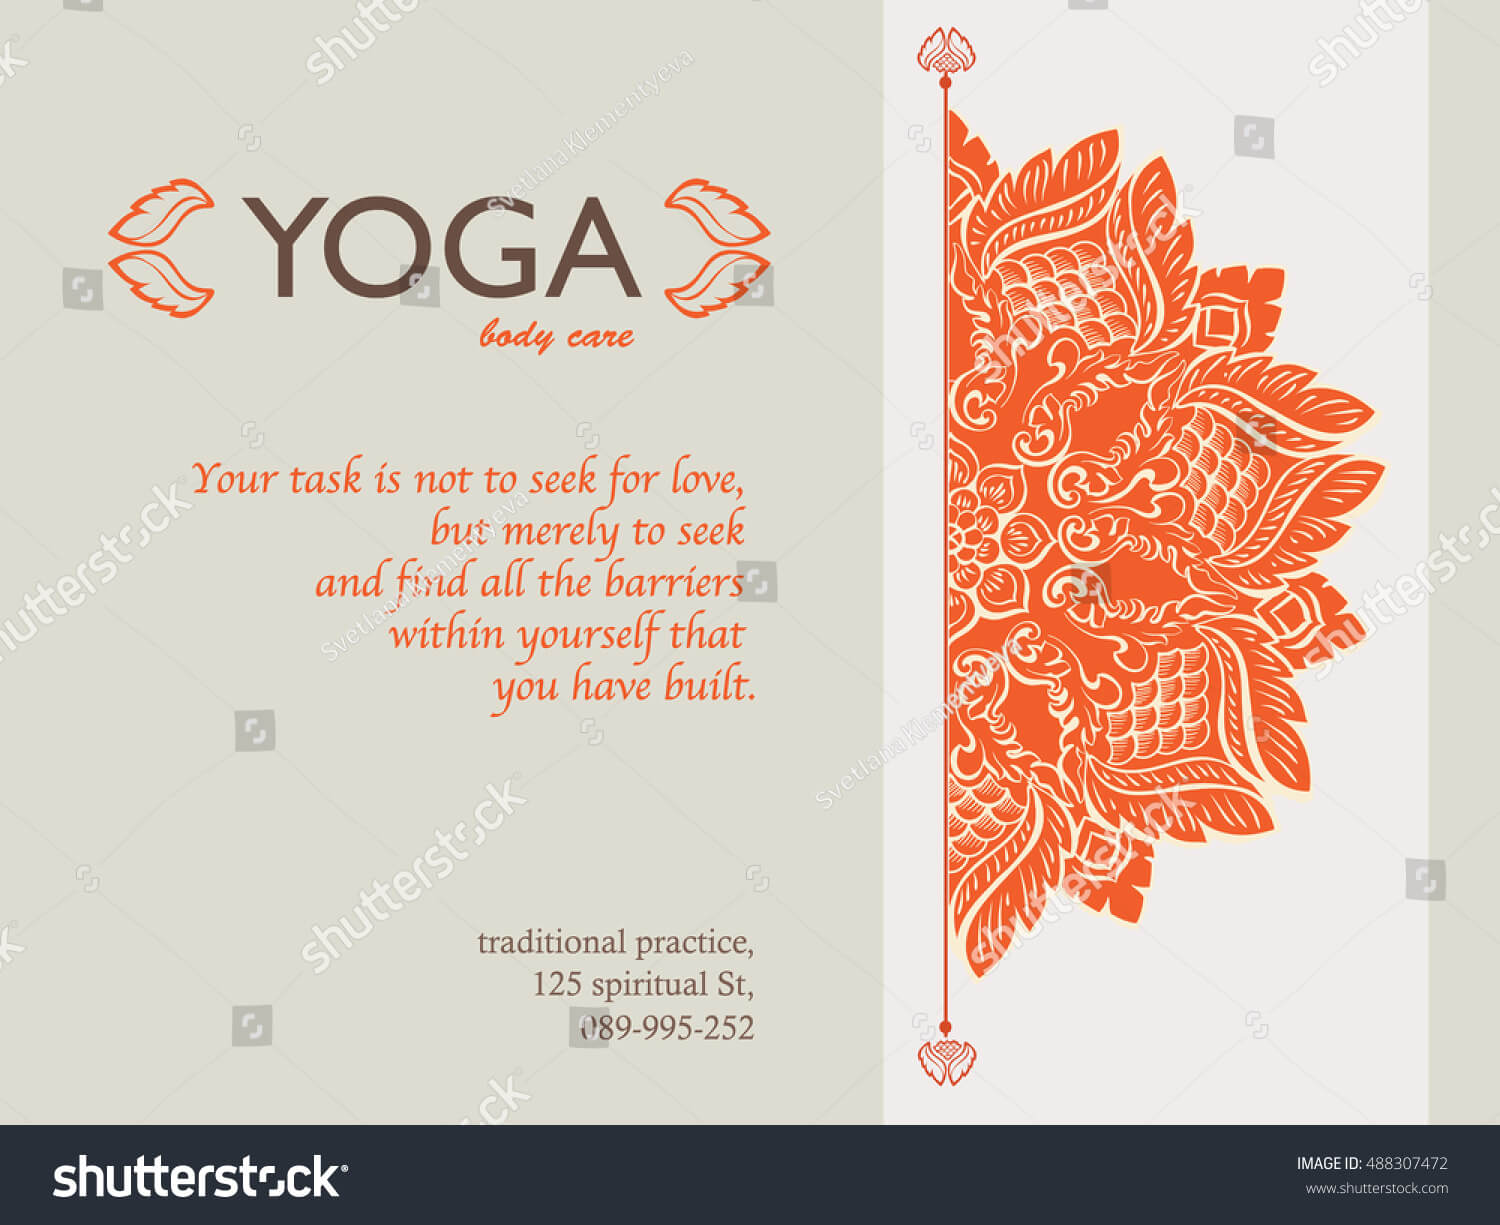 Yoga Gift Certificate Templates | Gift Certificate Templates Within Yoga Gift Certificate Template Free